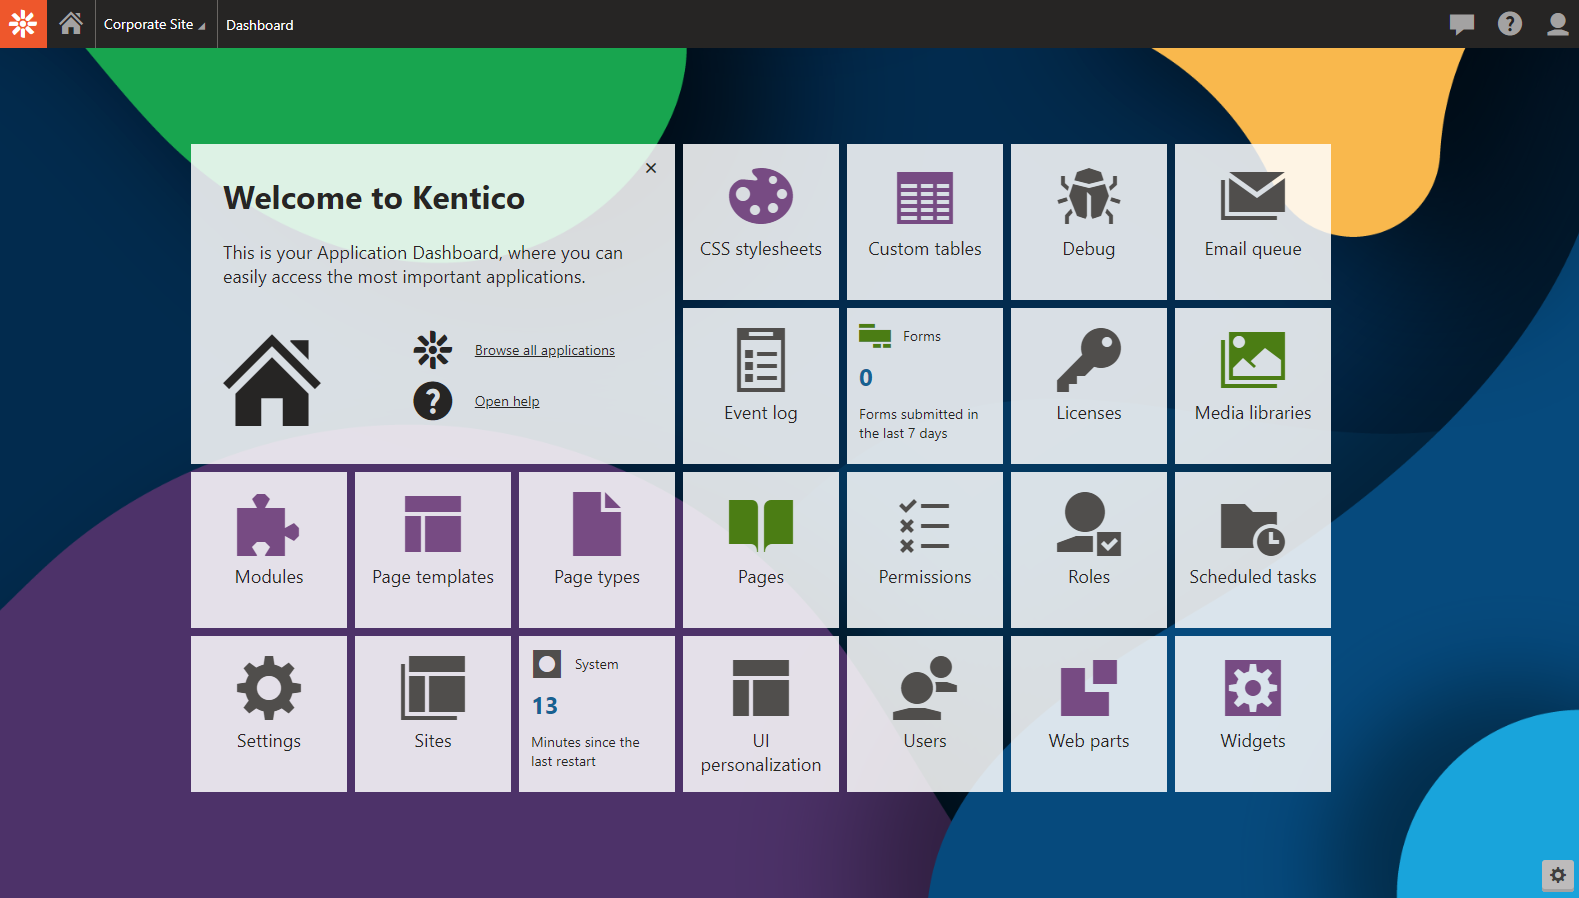 Constant Care for Kentico